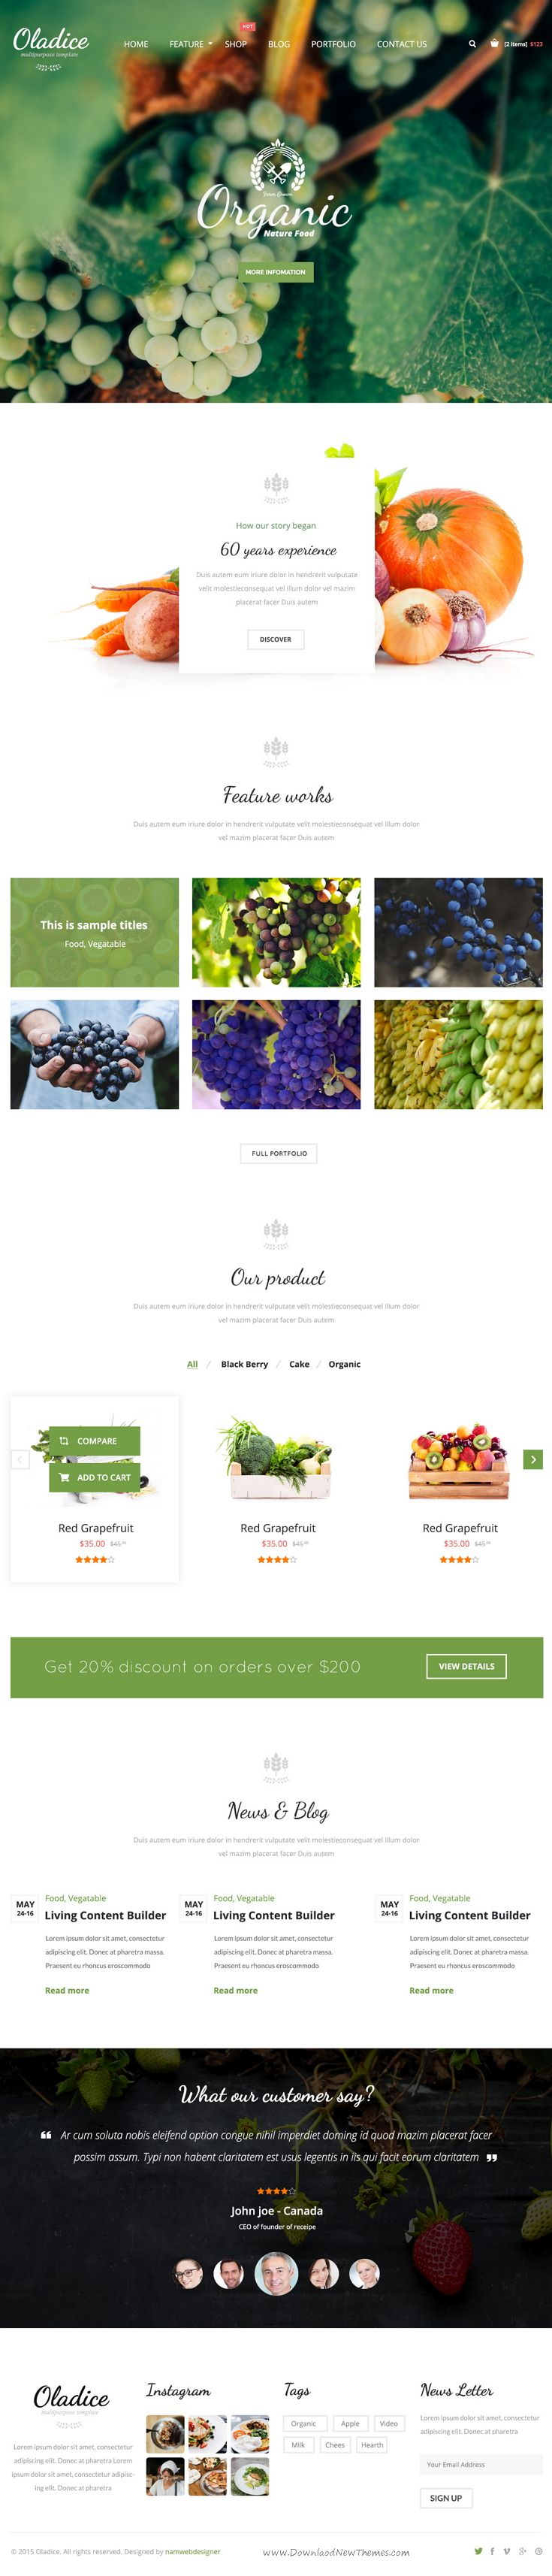 Oladice is clean and elegant design PSD Template for Organic Farms website. Download Now!